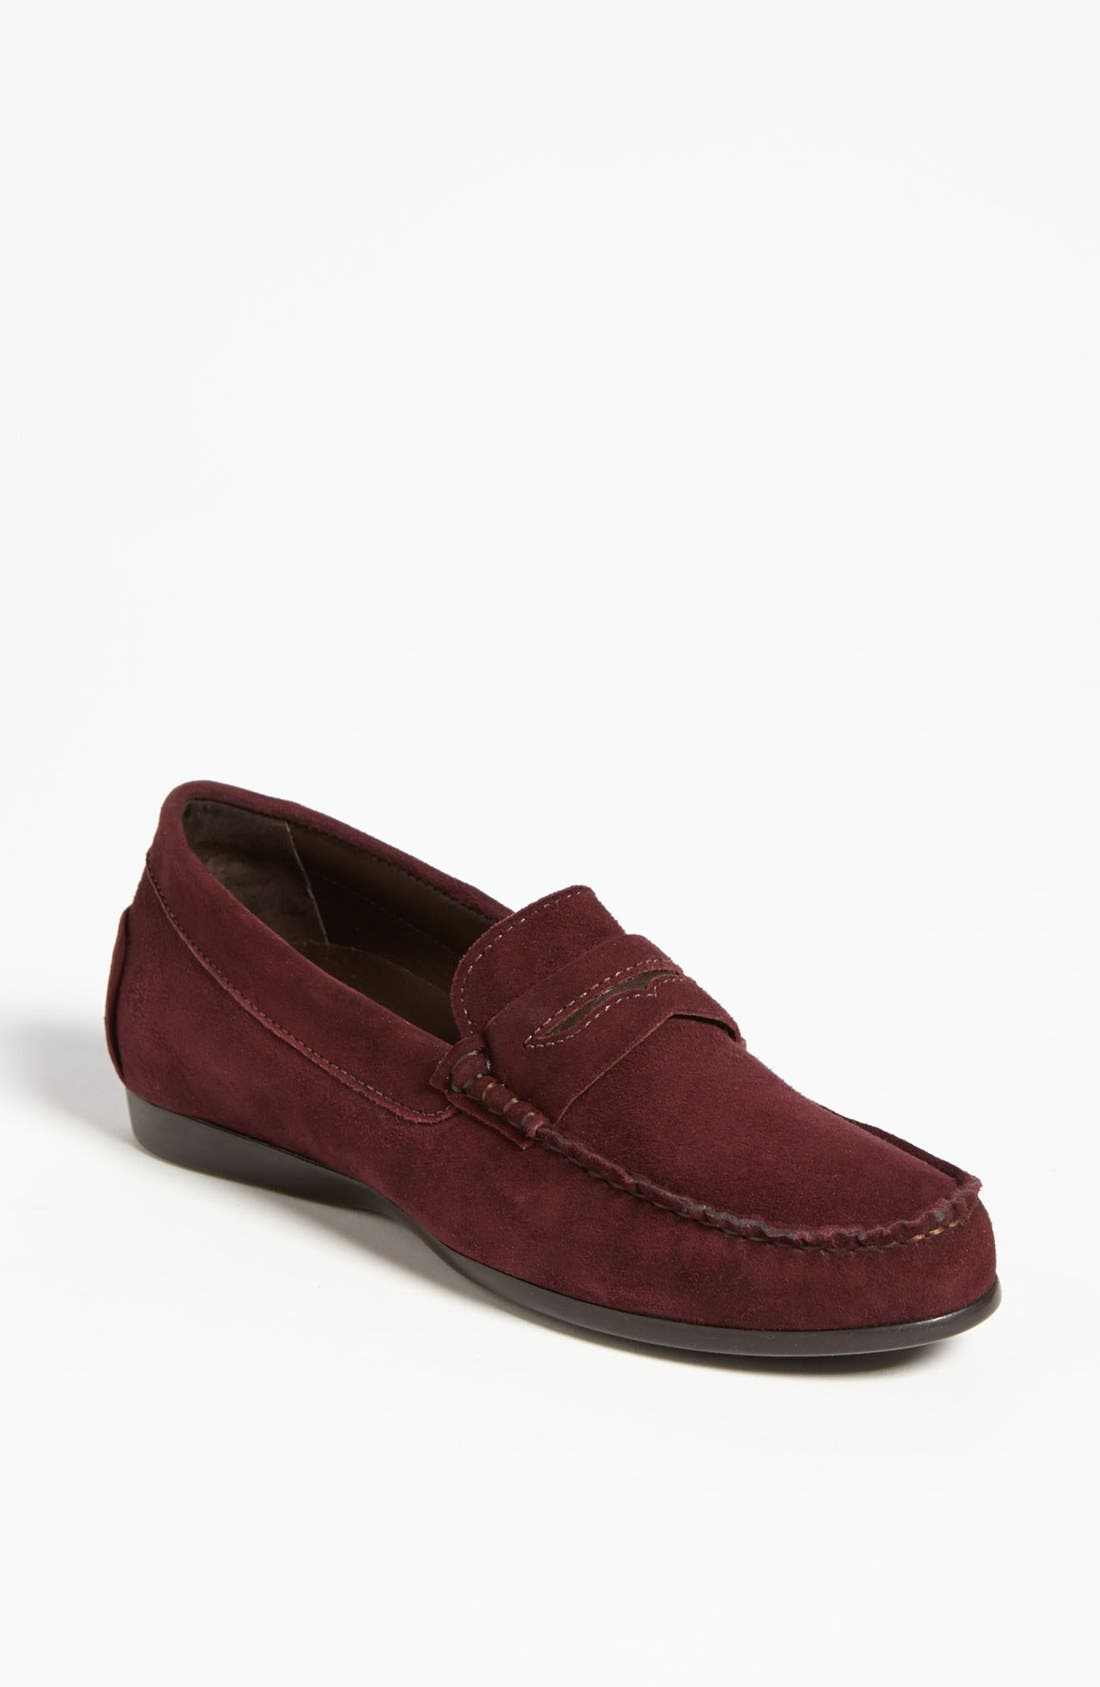 Alternate Image 1 Selected - Munro 'Ramie' Loafer